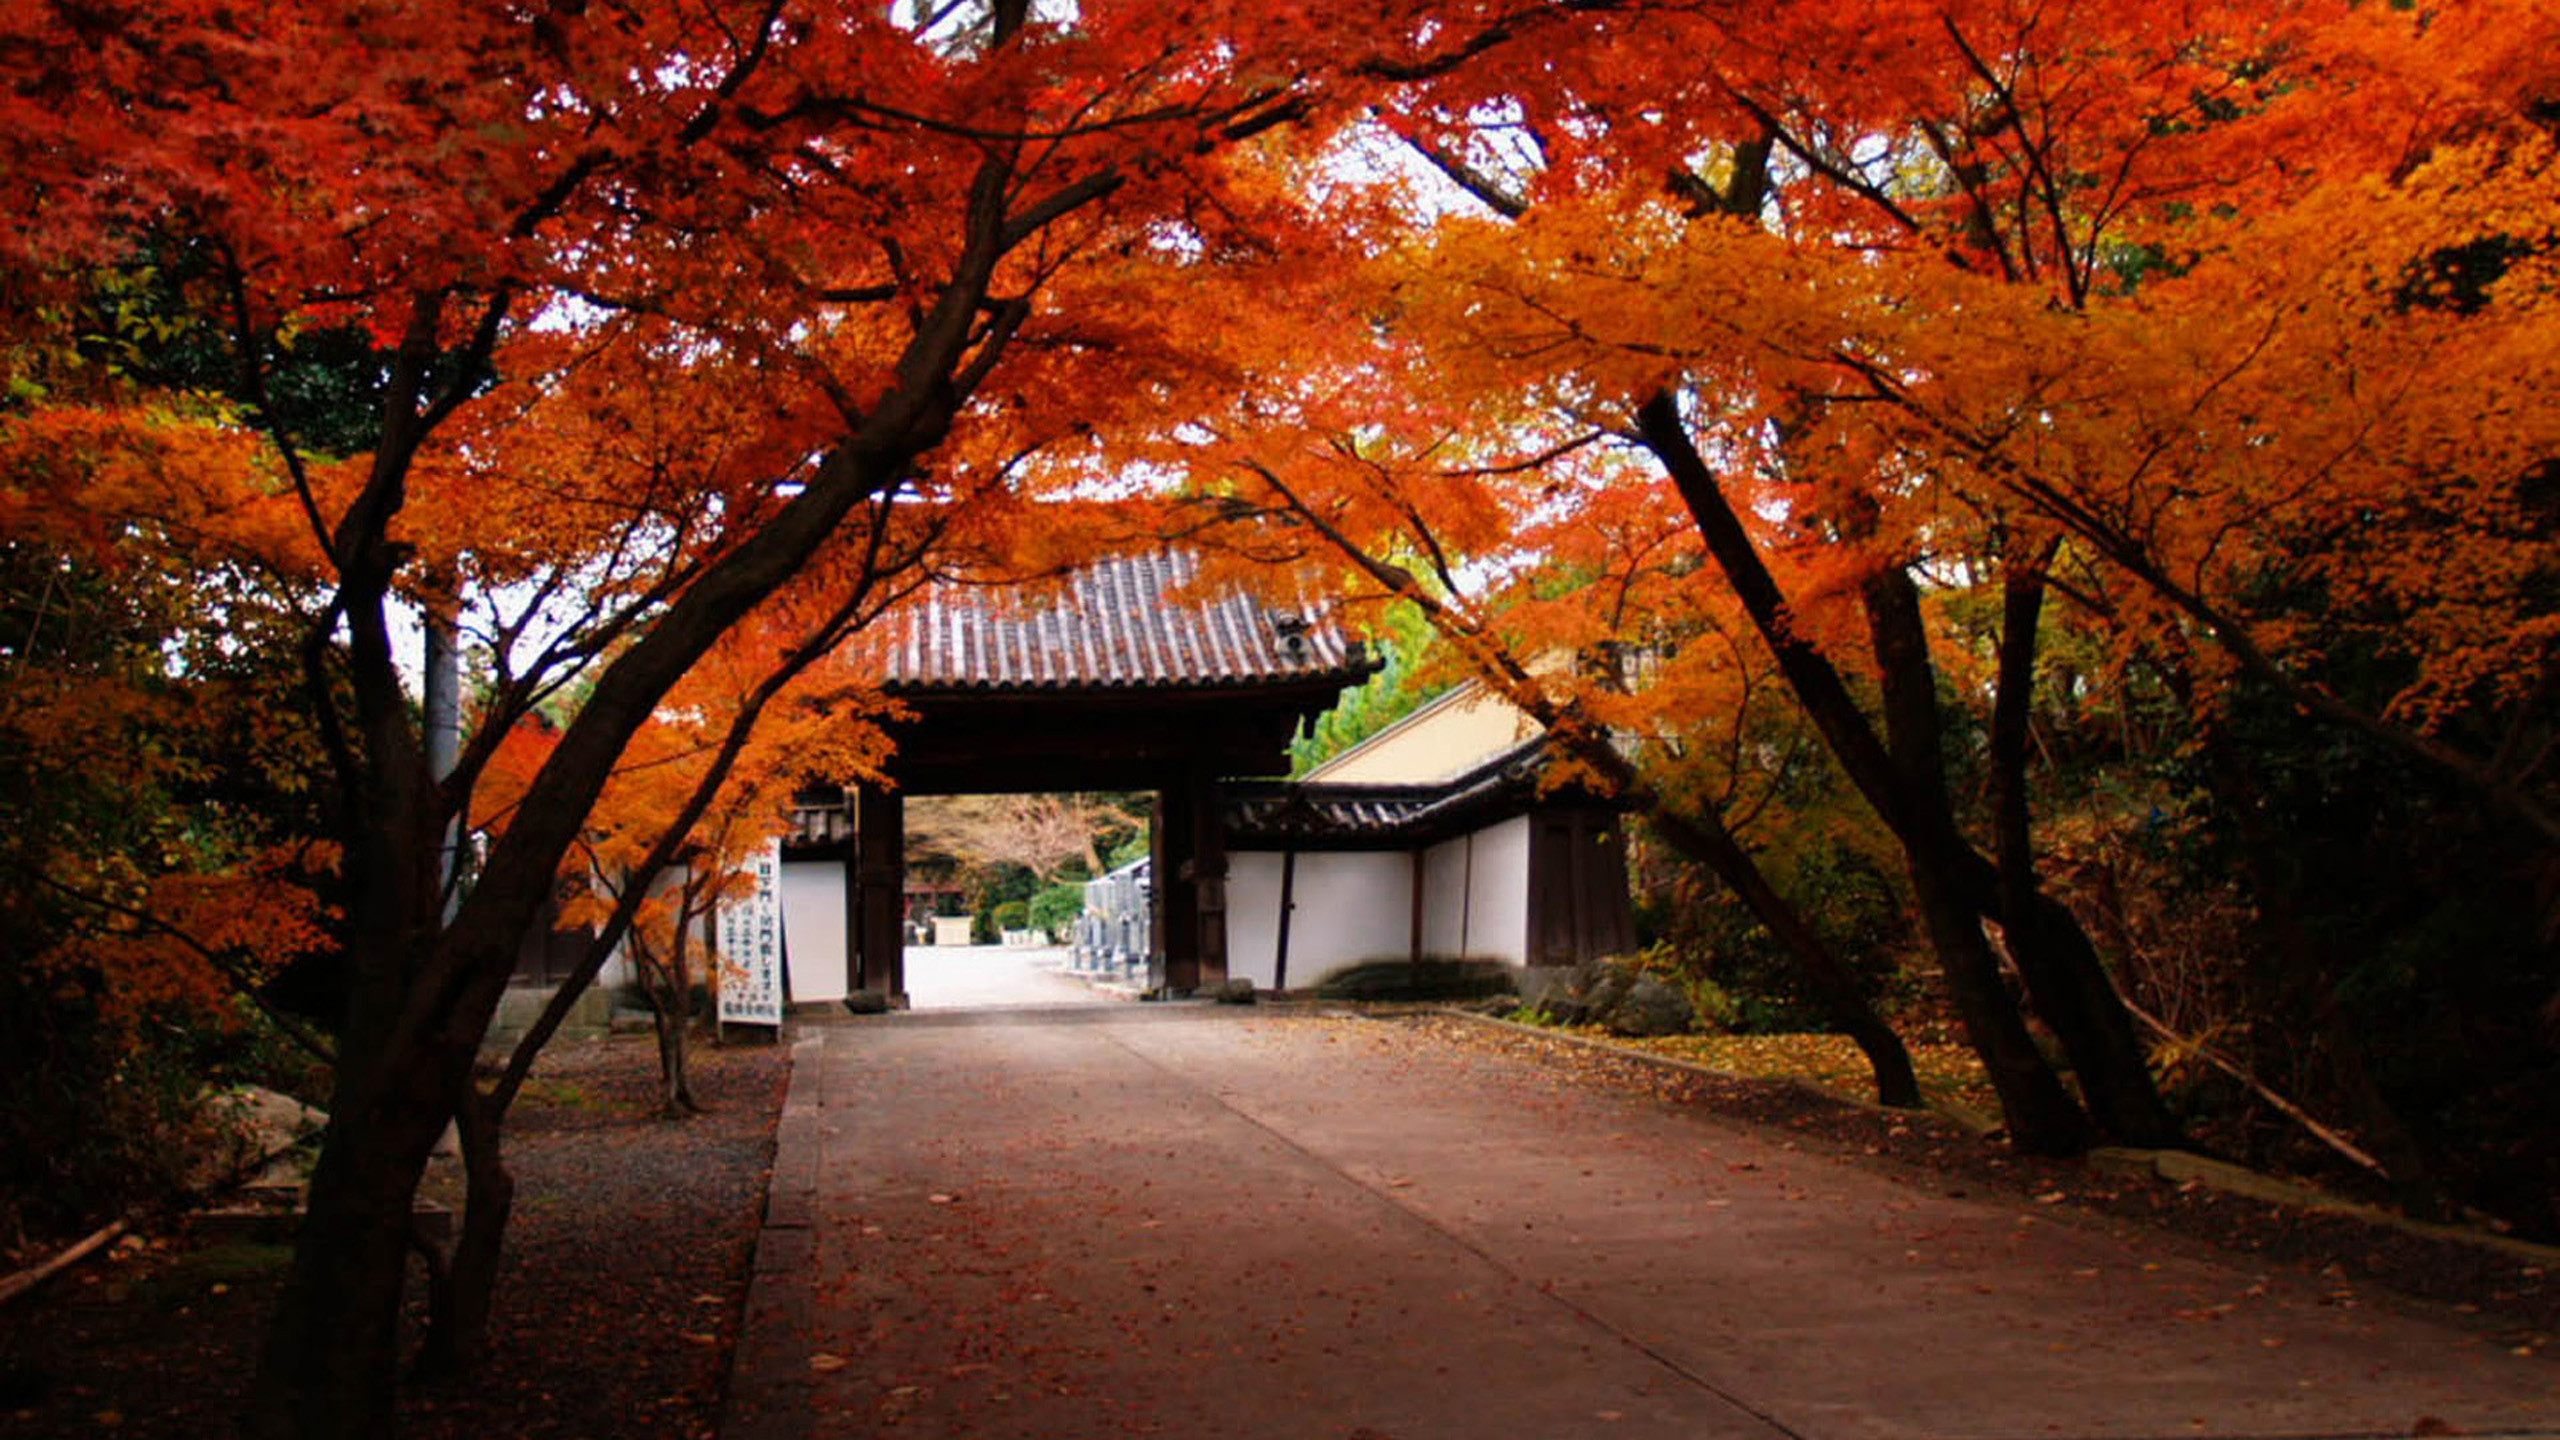 Res: 2560x1440, Japanese autumn scenery Wallpapers HD, HD Desktop Wallpapers